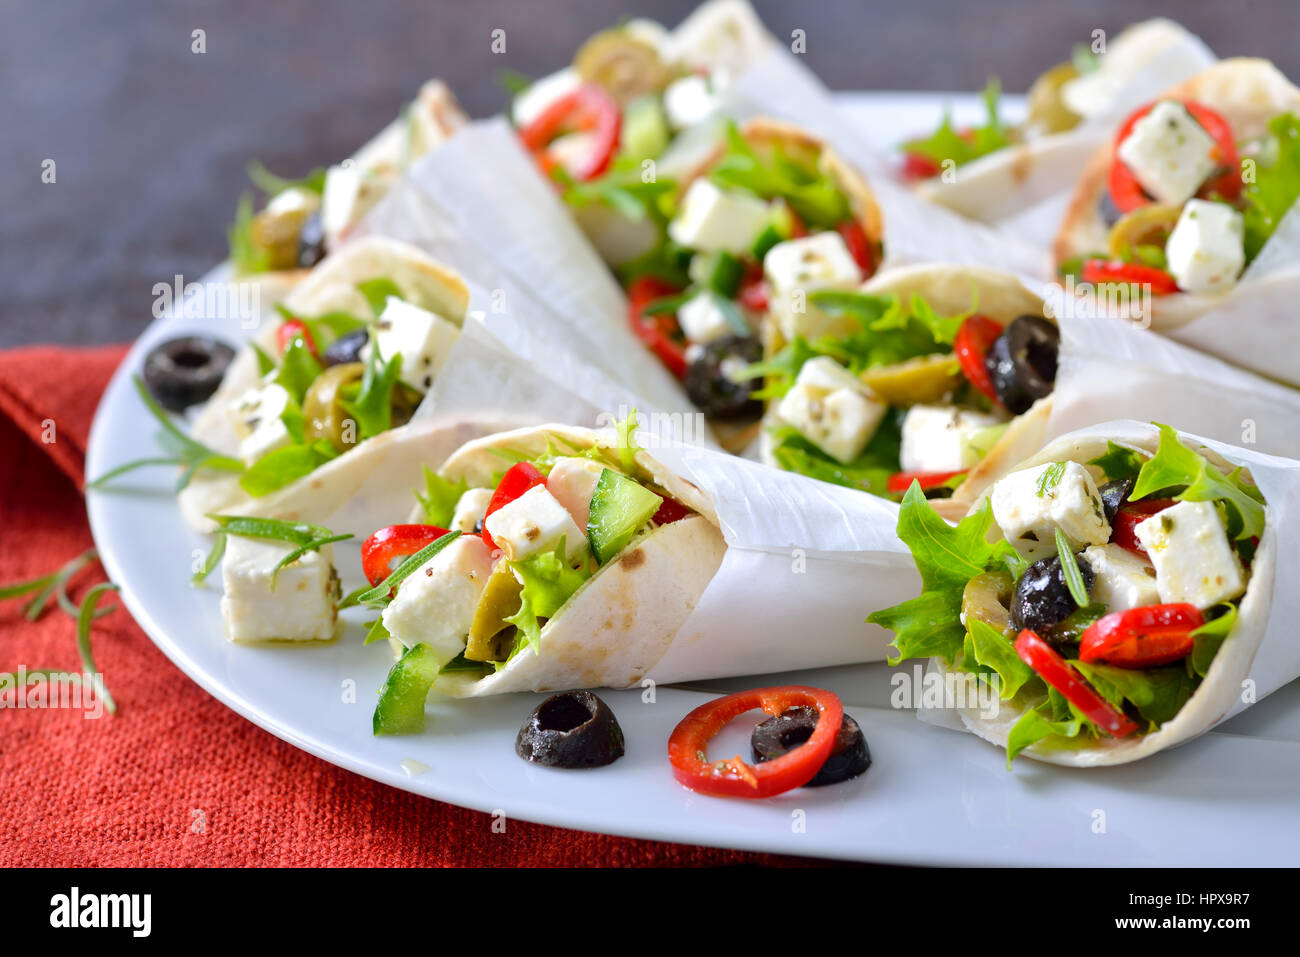 Mini tortillas stuffed with Greek farmers salad with feta cheese and olives, served in white paper bags Stock Photo